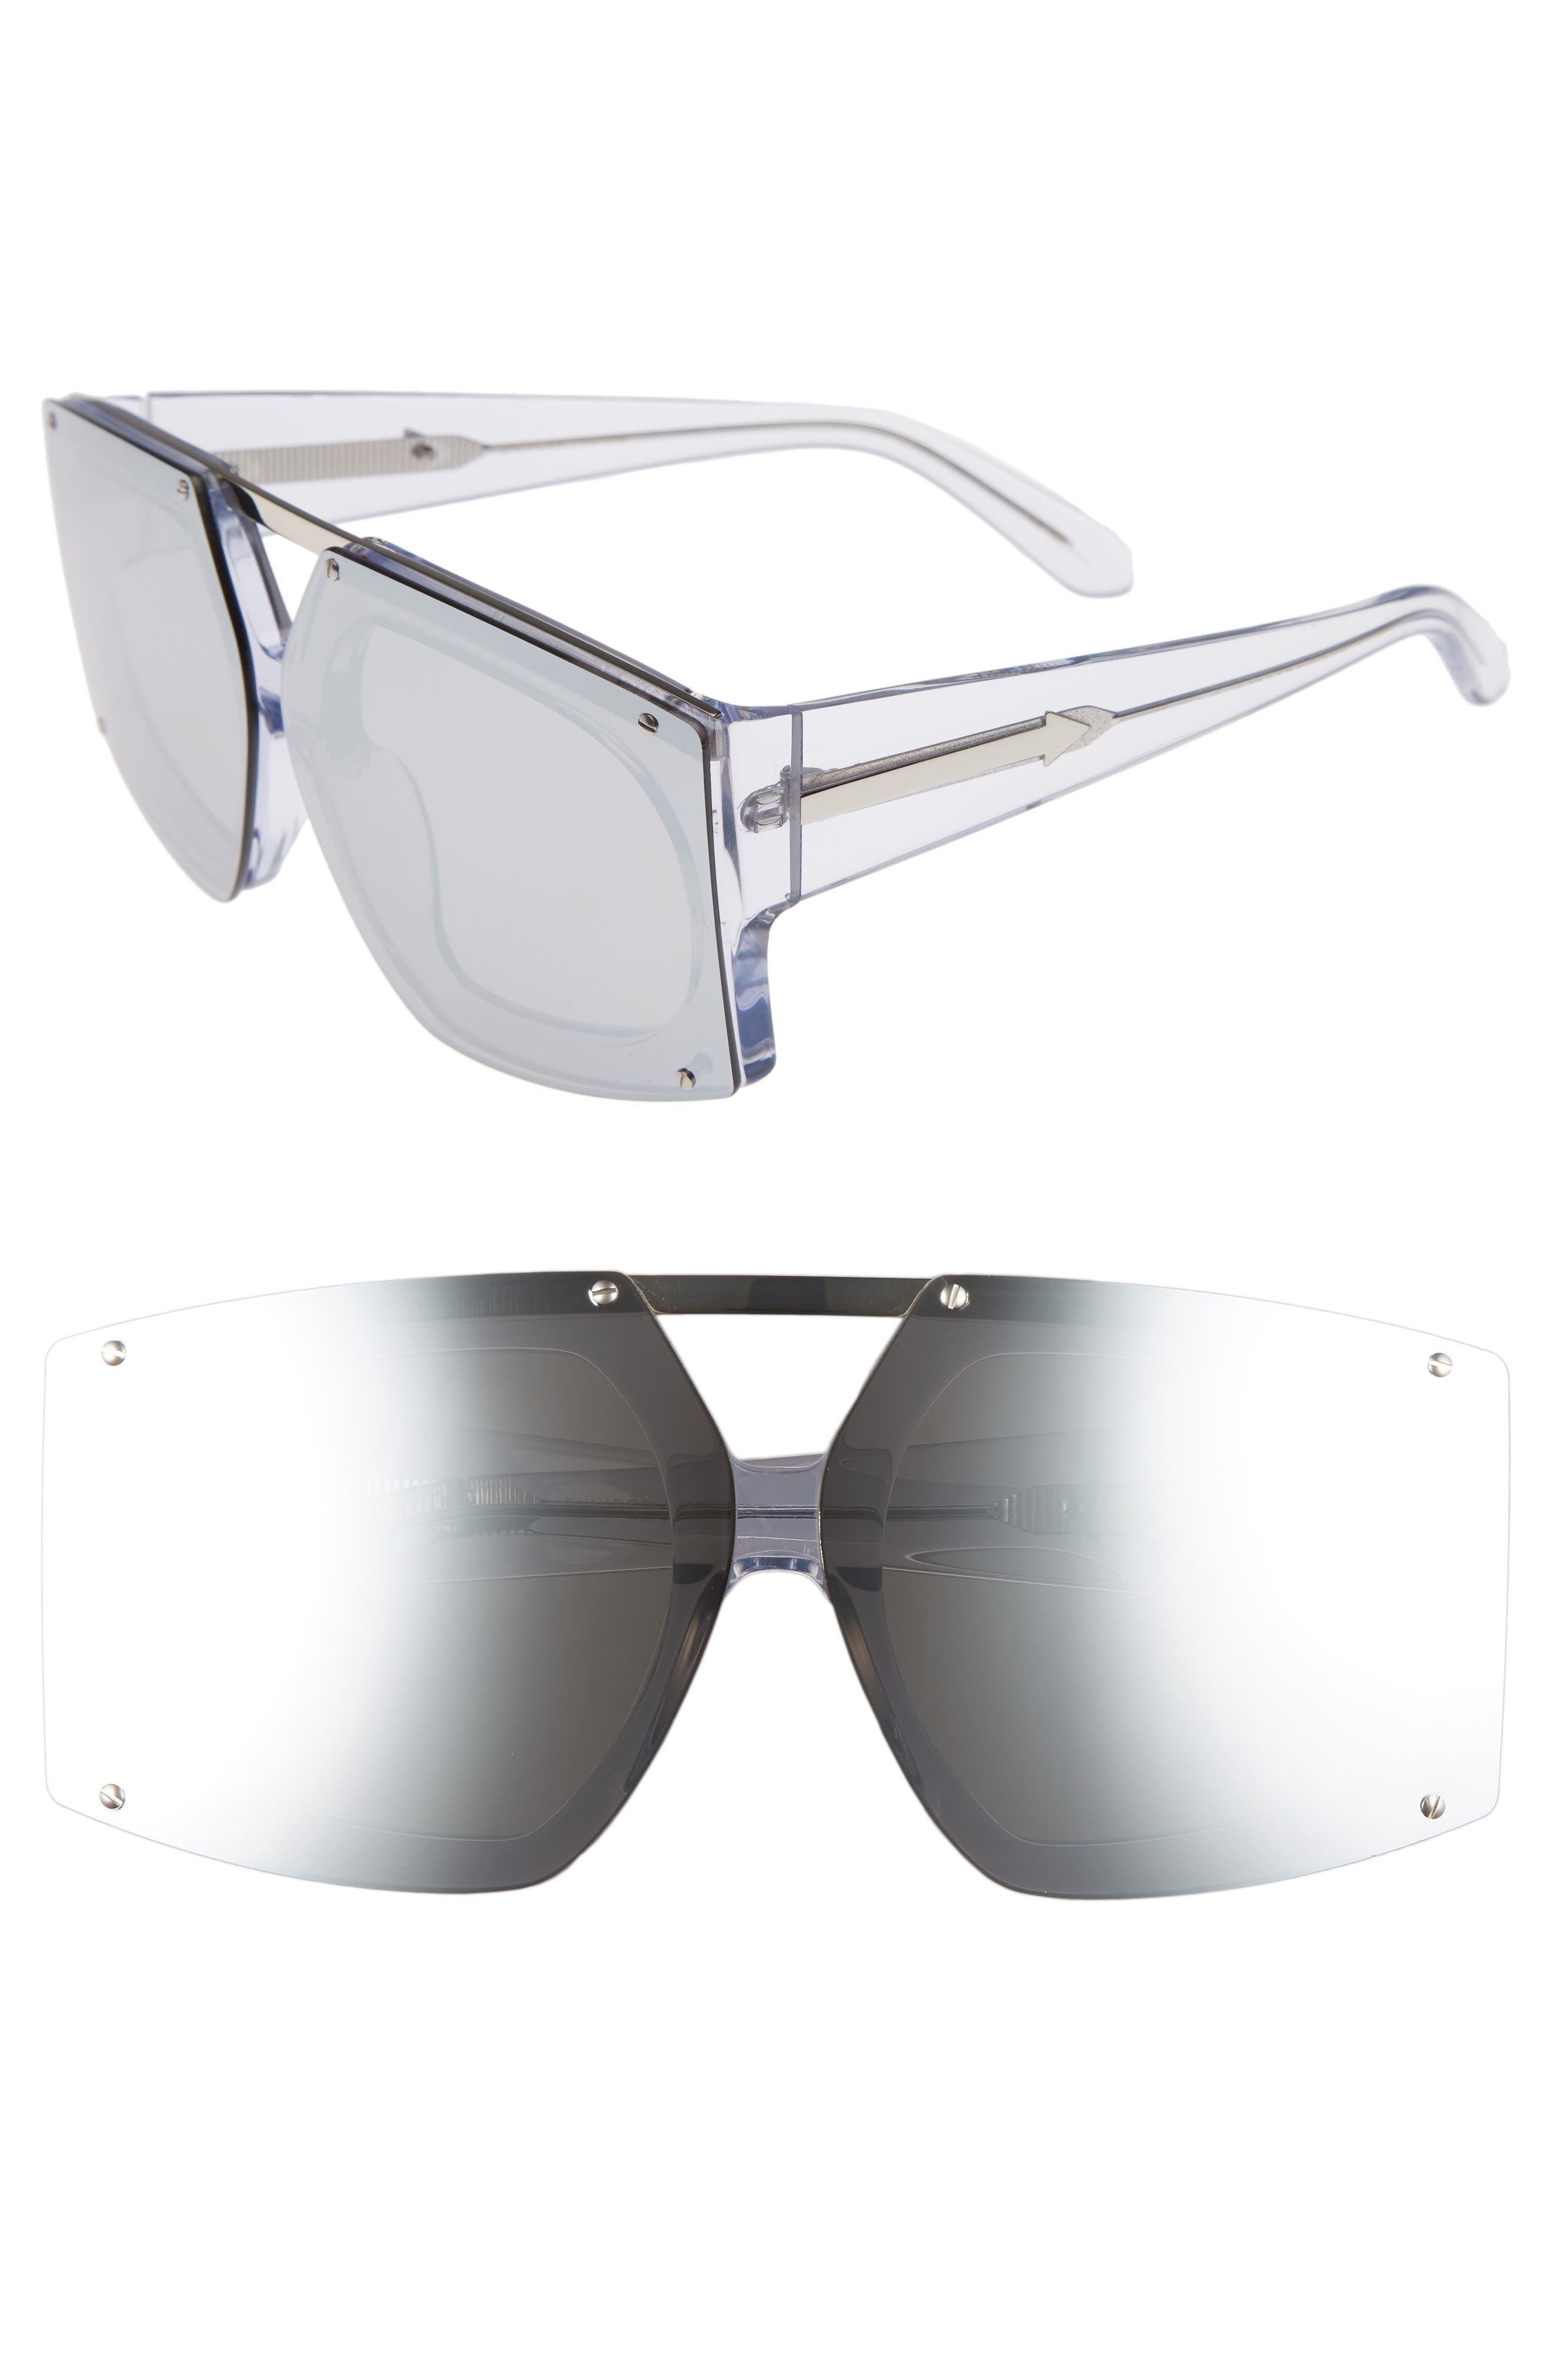 70mm Mirrored Oversized Sunglasses,                             Main thumbnail 1, color,